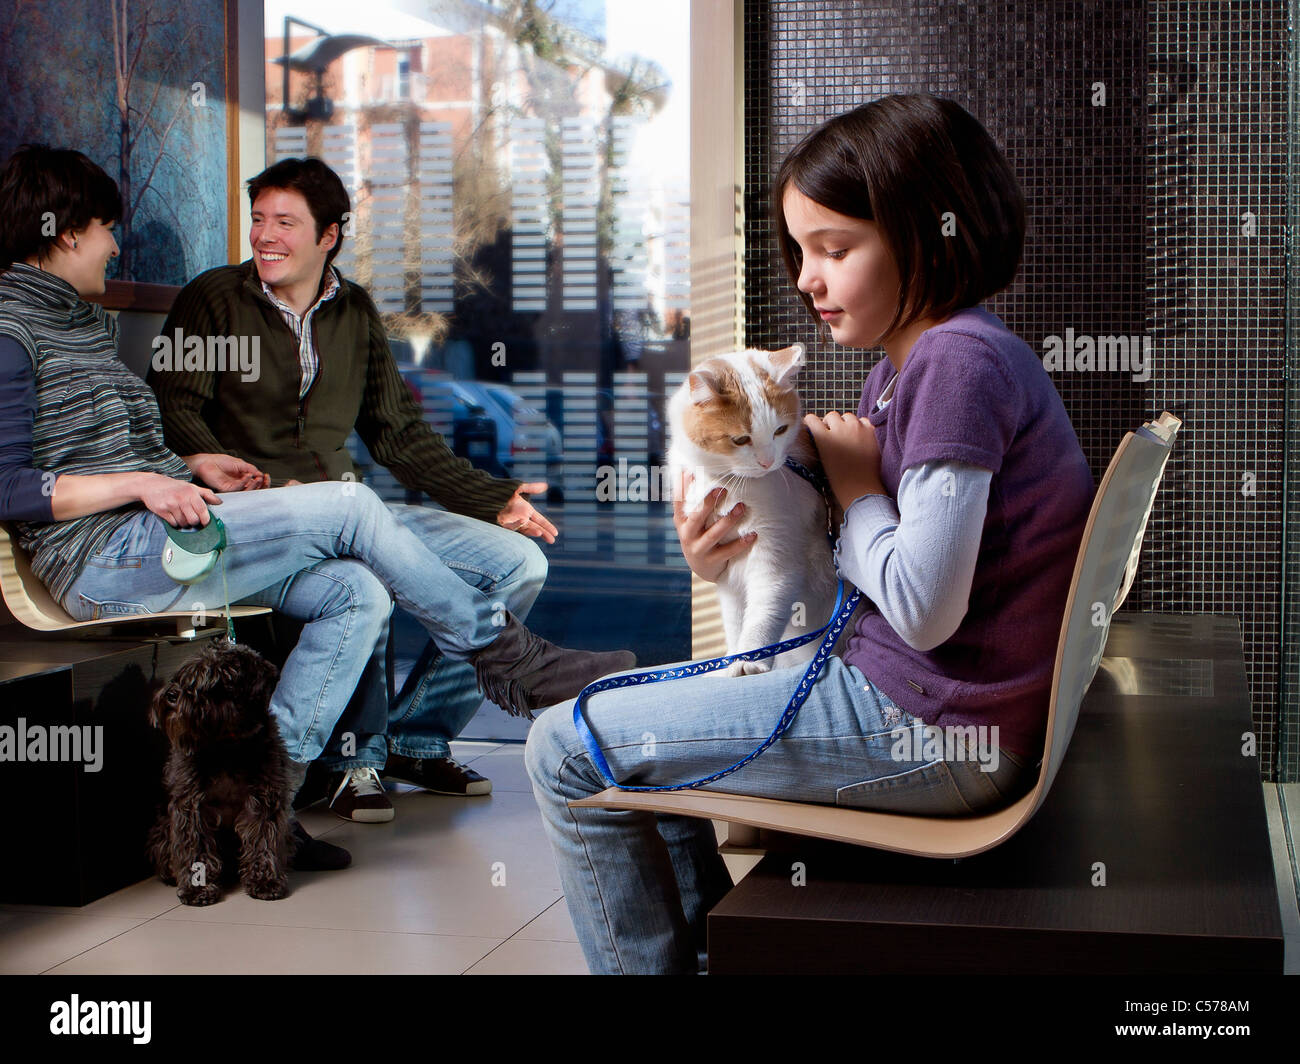 Girl with her cat in vet waiting room - Stock Image